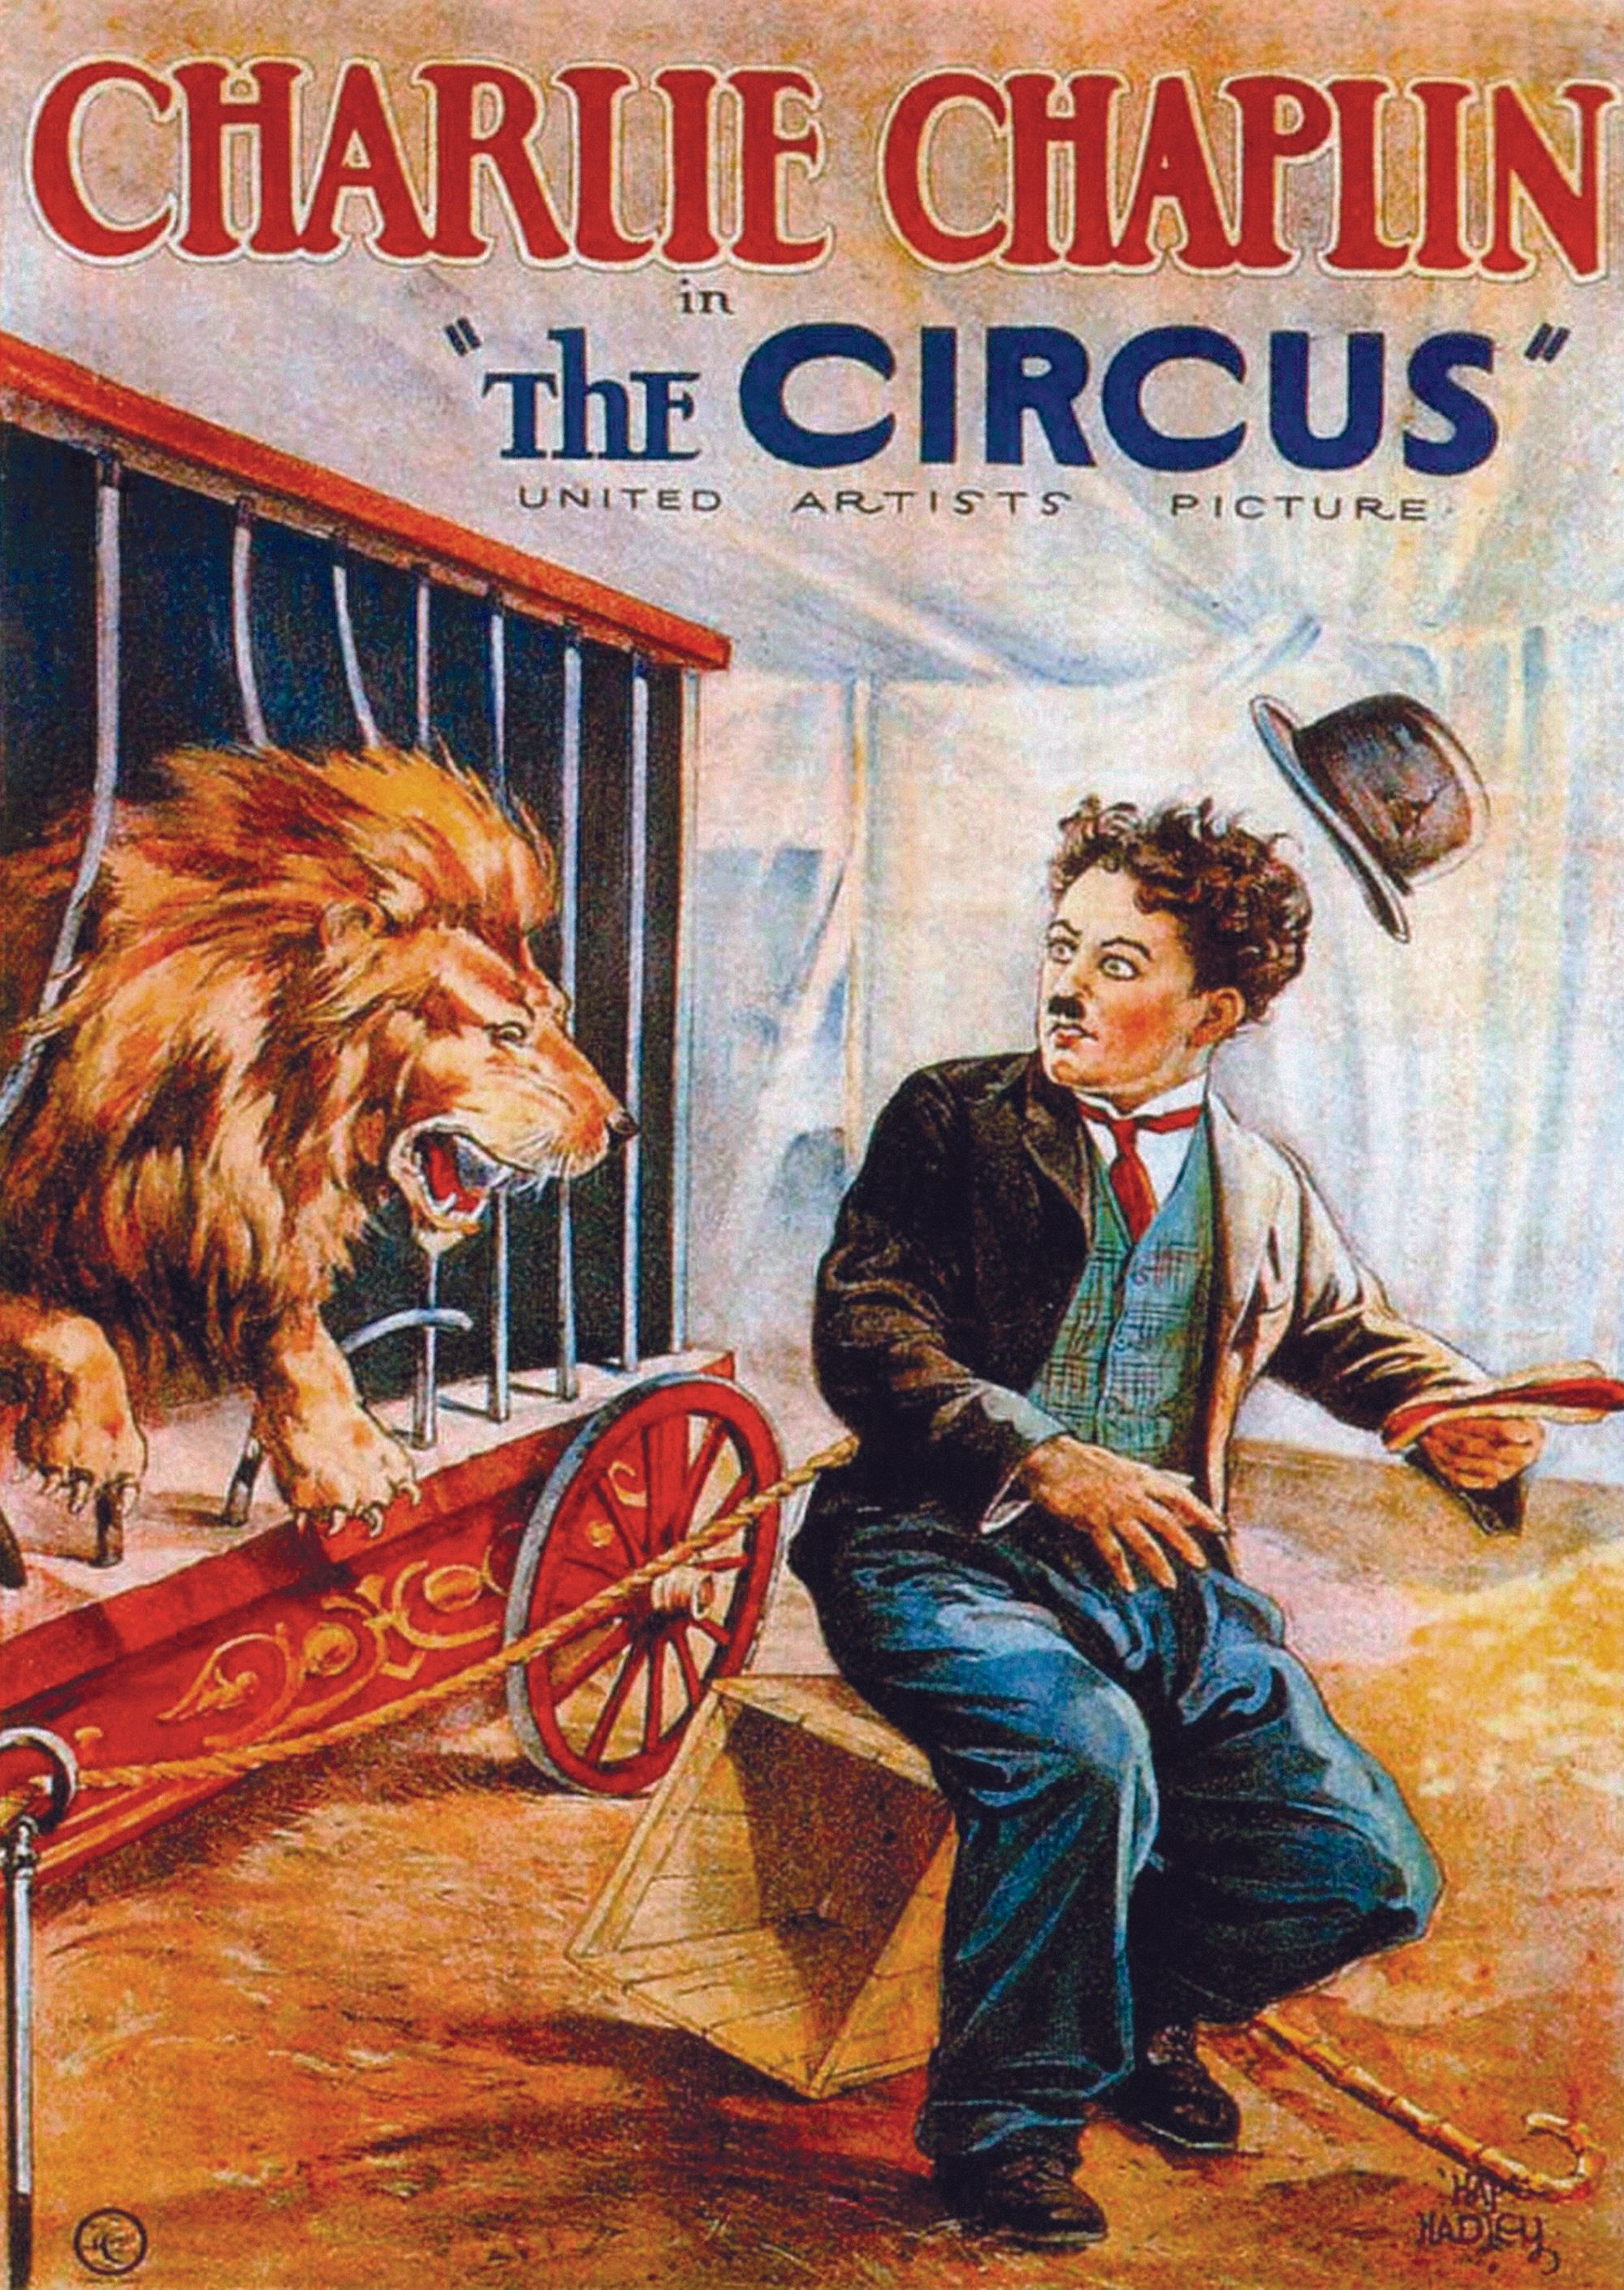 The Circus</i>, by Charlie Chaplin, 1928